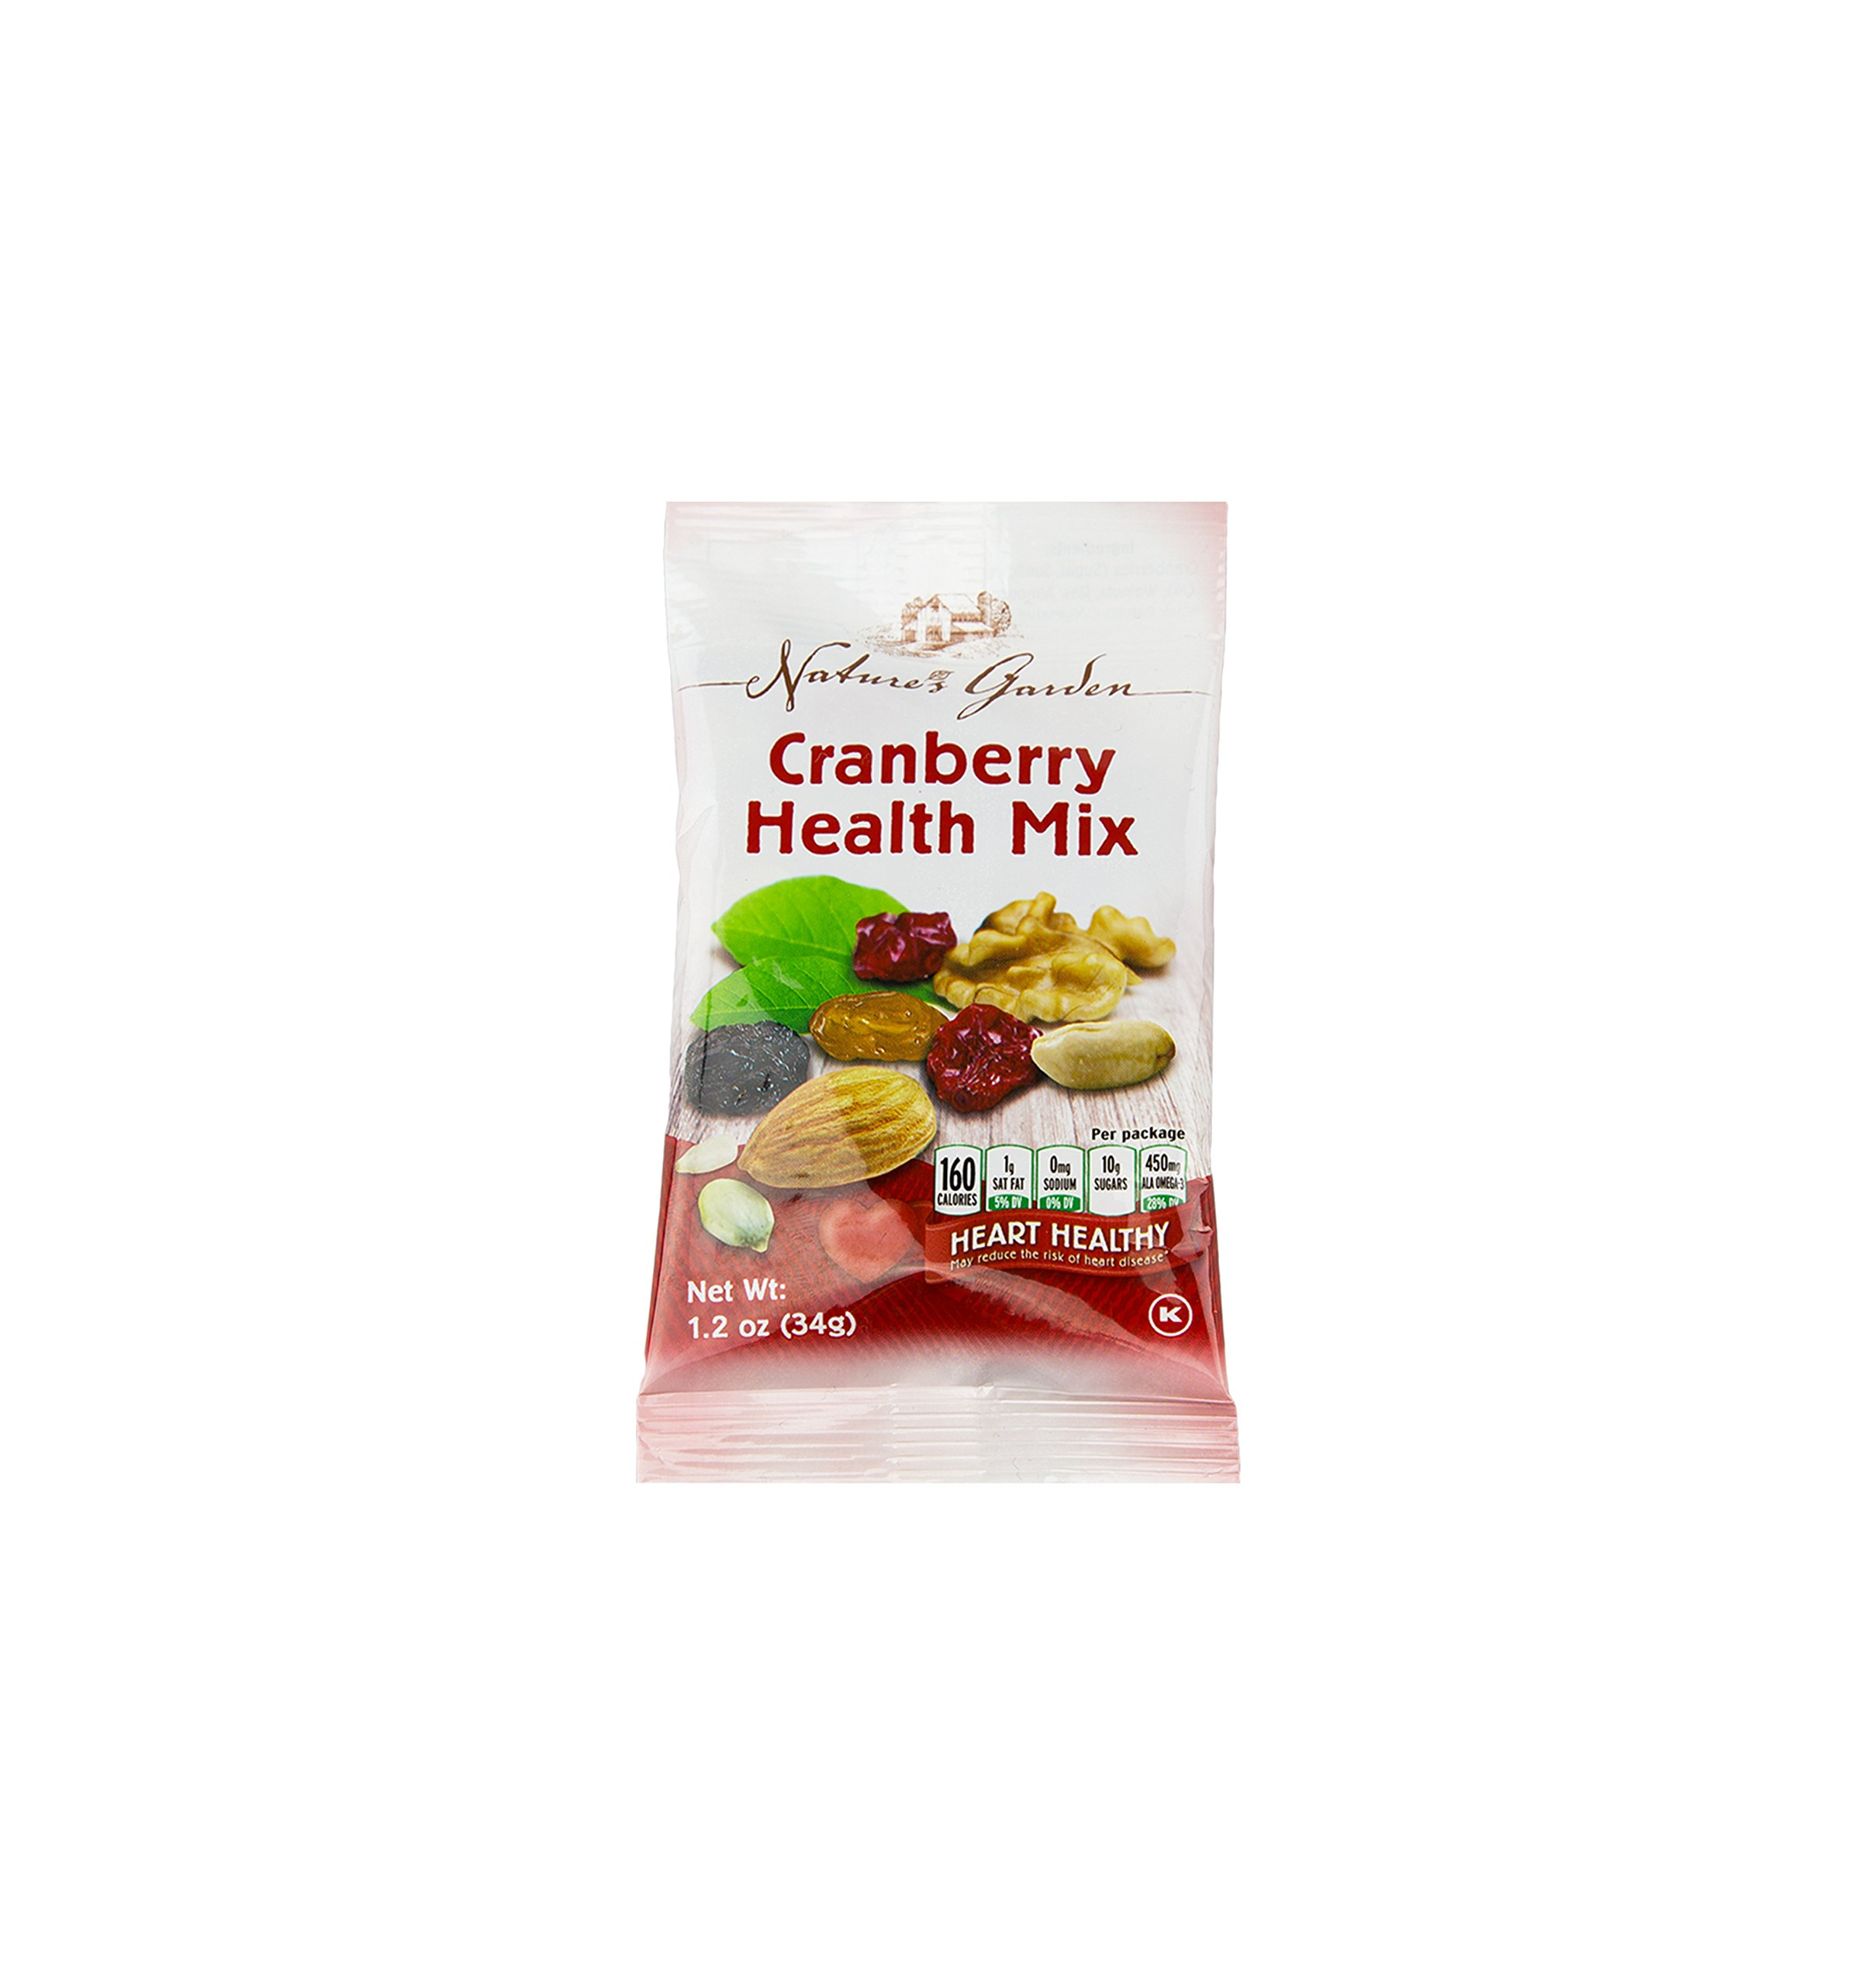 Healthy Premium Assorted Nuts and Fruits Snack Mix Sampler Variety Pack, Good for the Heart by Variety Fun (Care Package 24 Count) by Custom Varietea (Image #2)